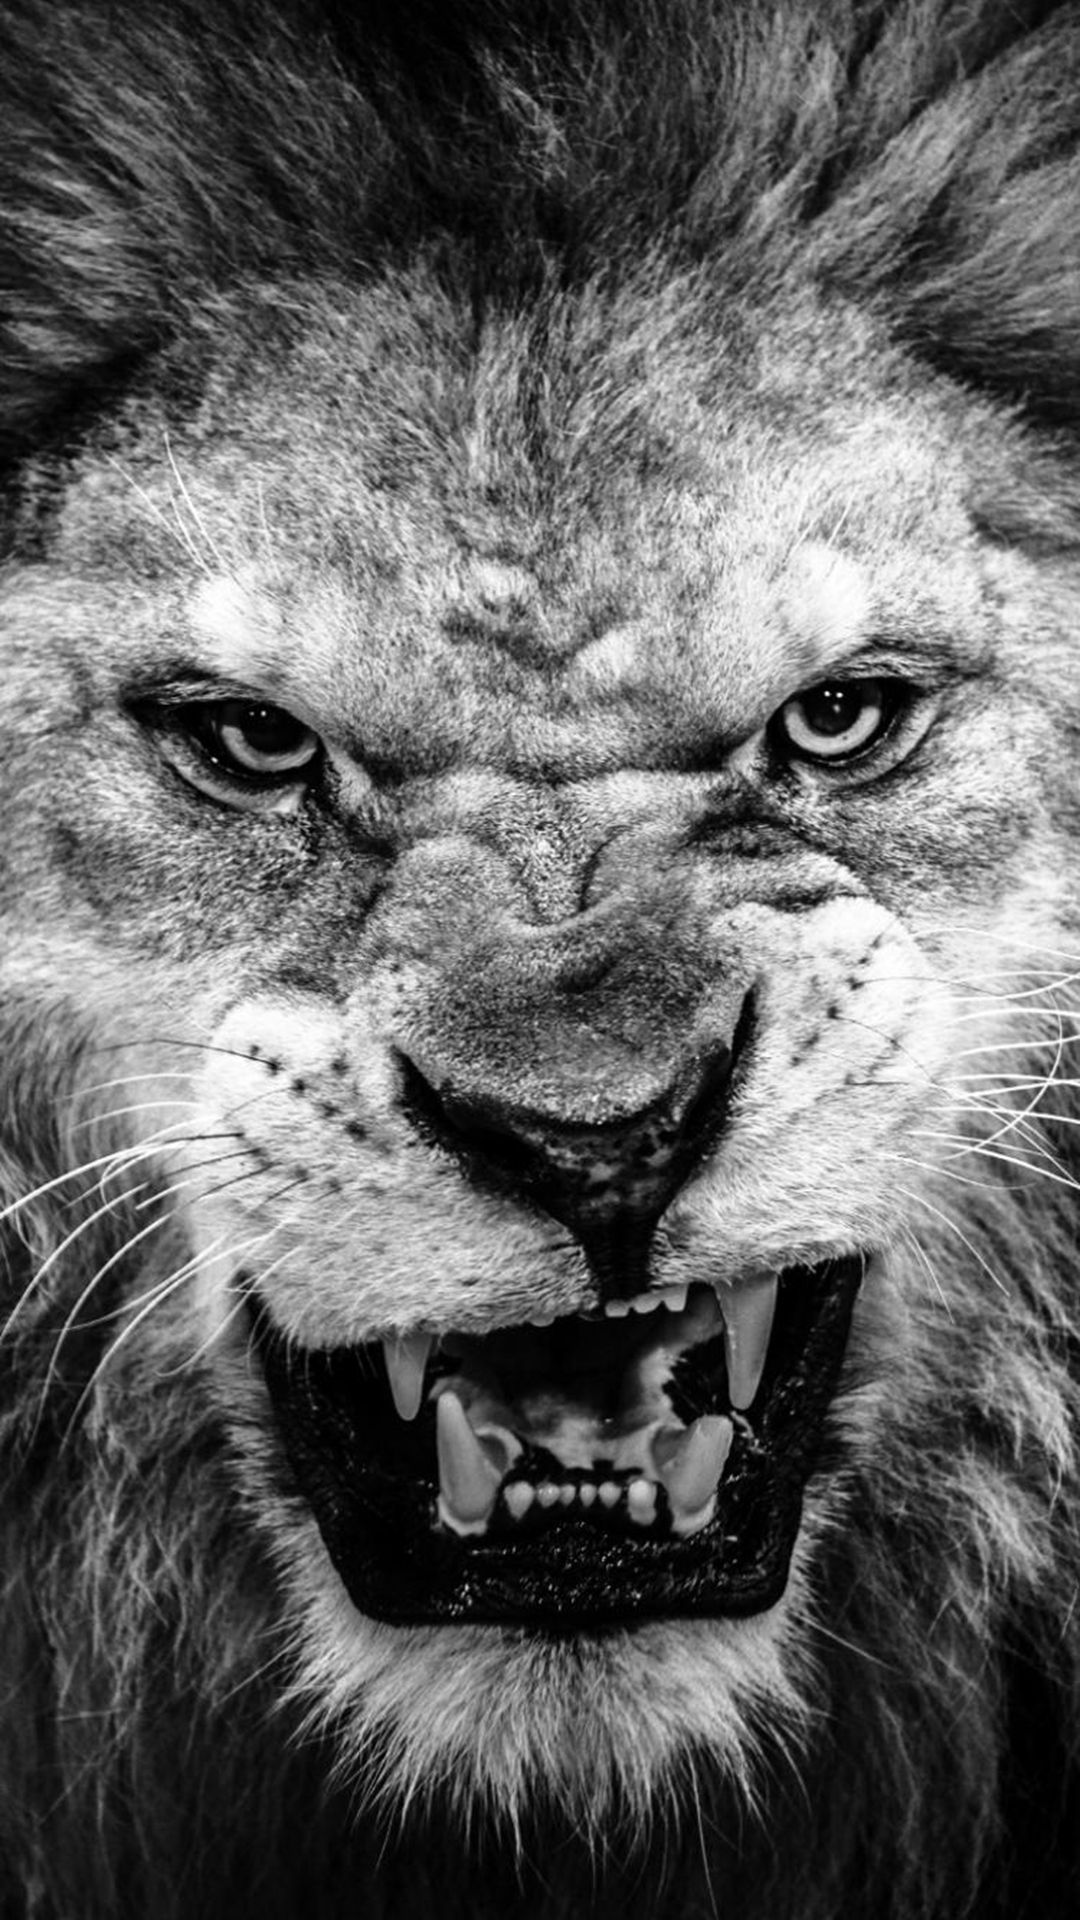 Lion Iphone Android Iphone Desktop Hd Backgrounds Wallpapers 1080p 4k 124878 Hdwallpapers Androidwall Lion Hd Wallpaper Lion Images Lion Pictures